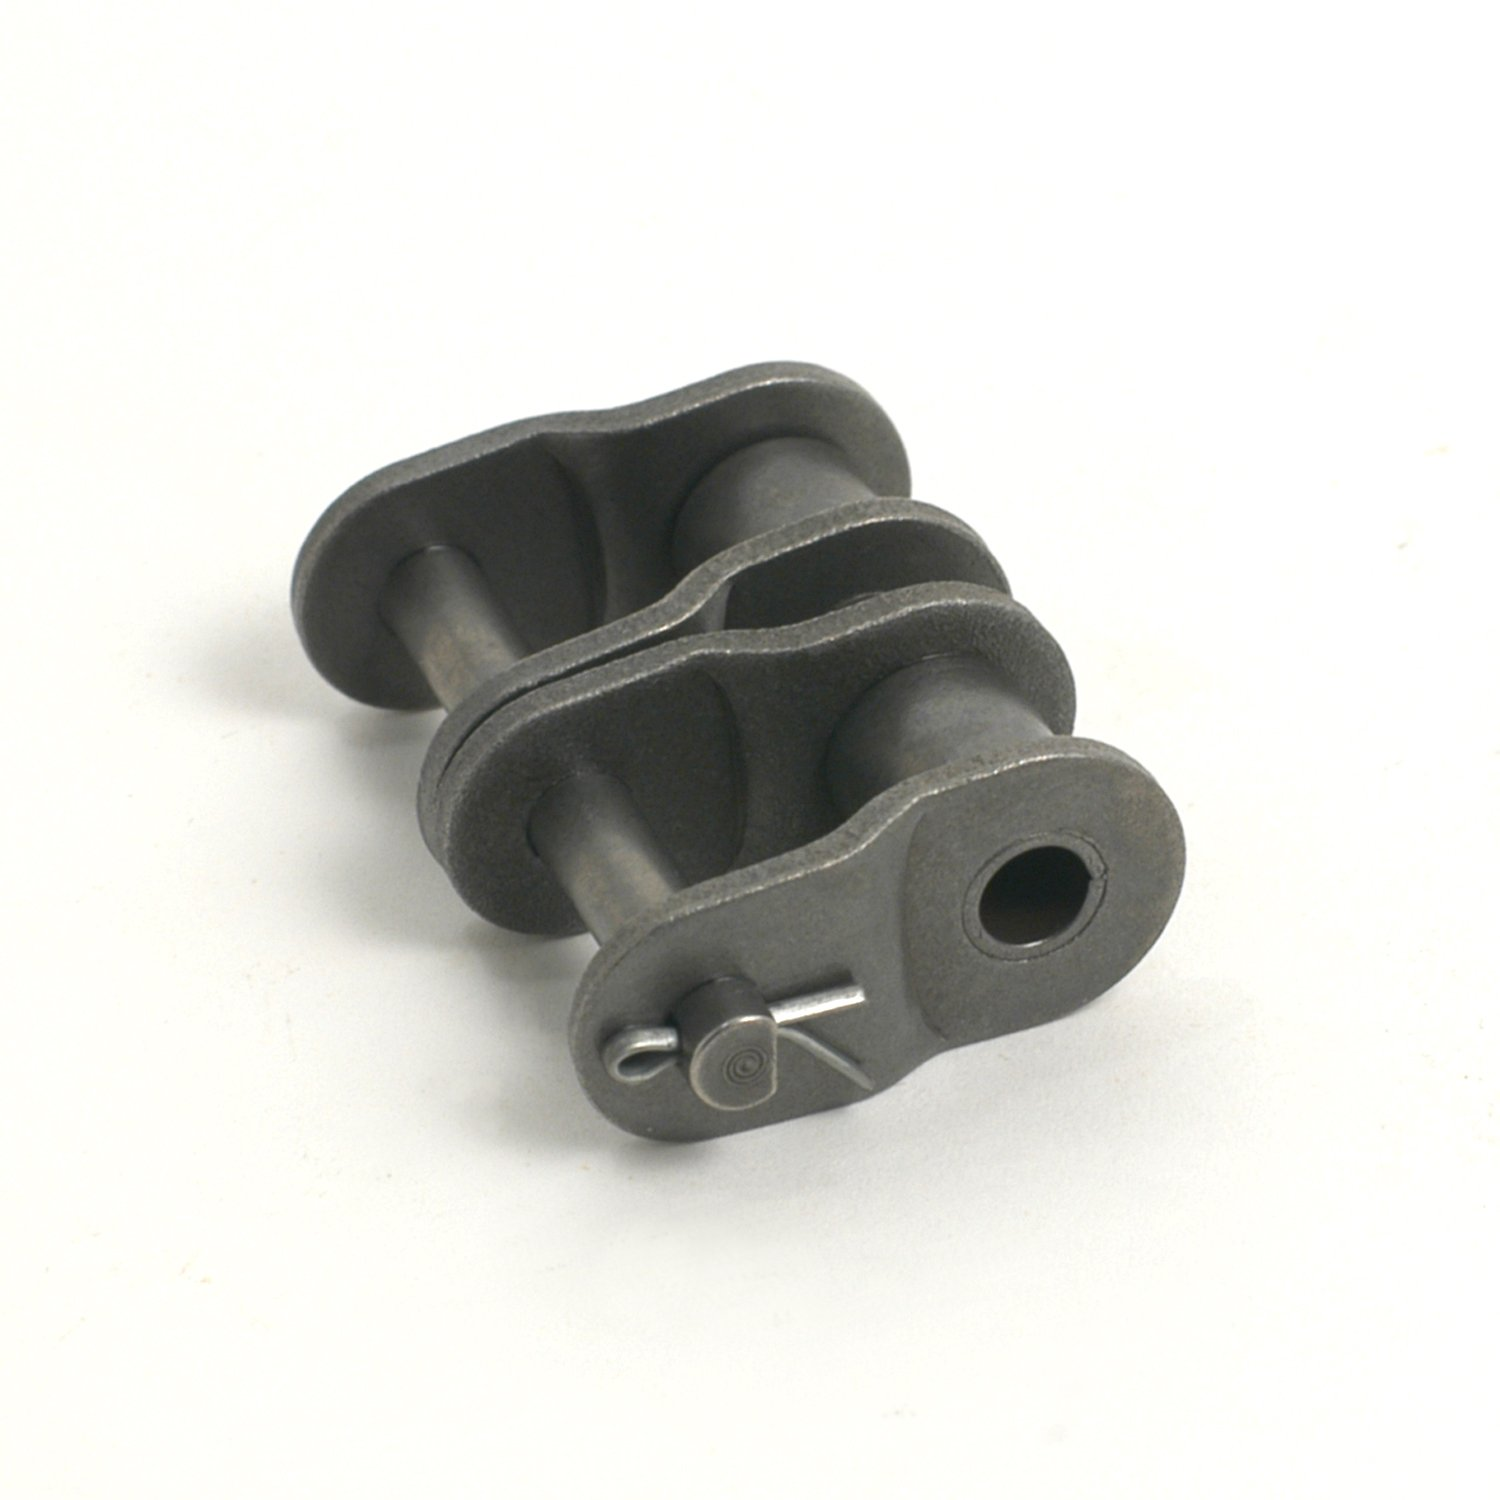 1.75 Length 1 Pitch 1.75 Length 1 Pitch Bearings Limited Offset Link TRITAN 80-2R OSL Precision ANSI Double Roller Chain